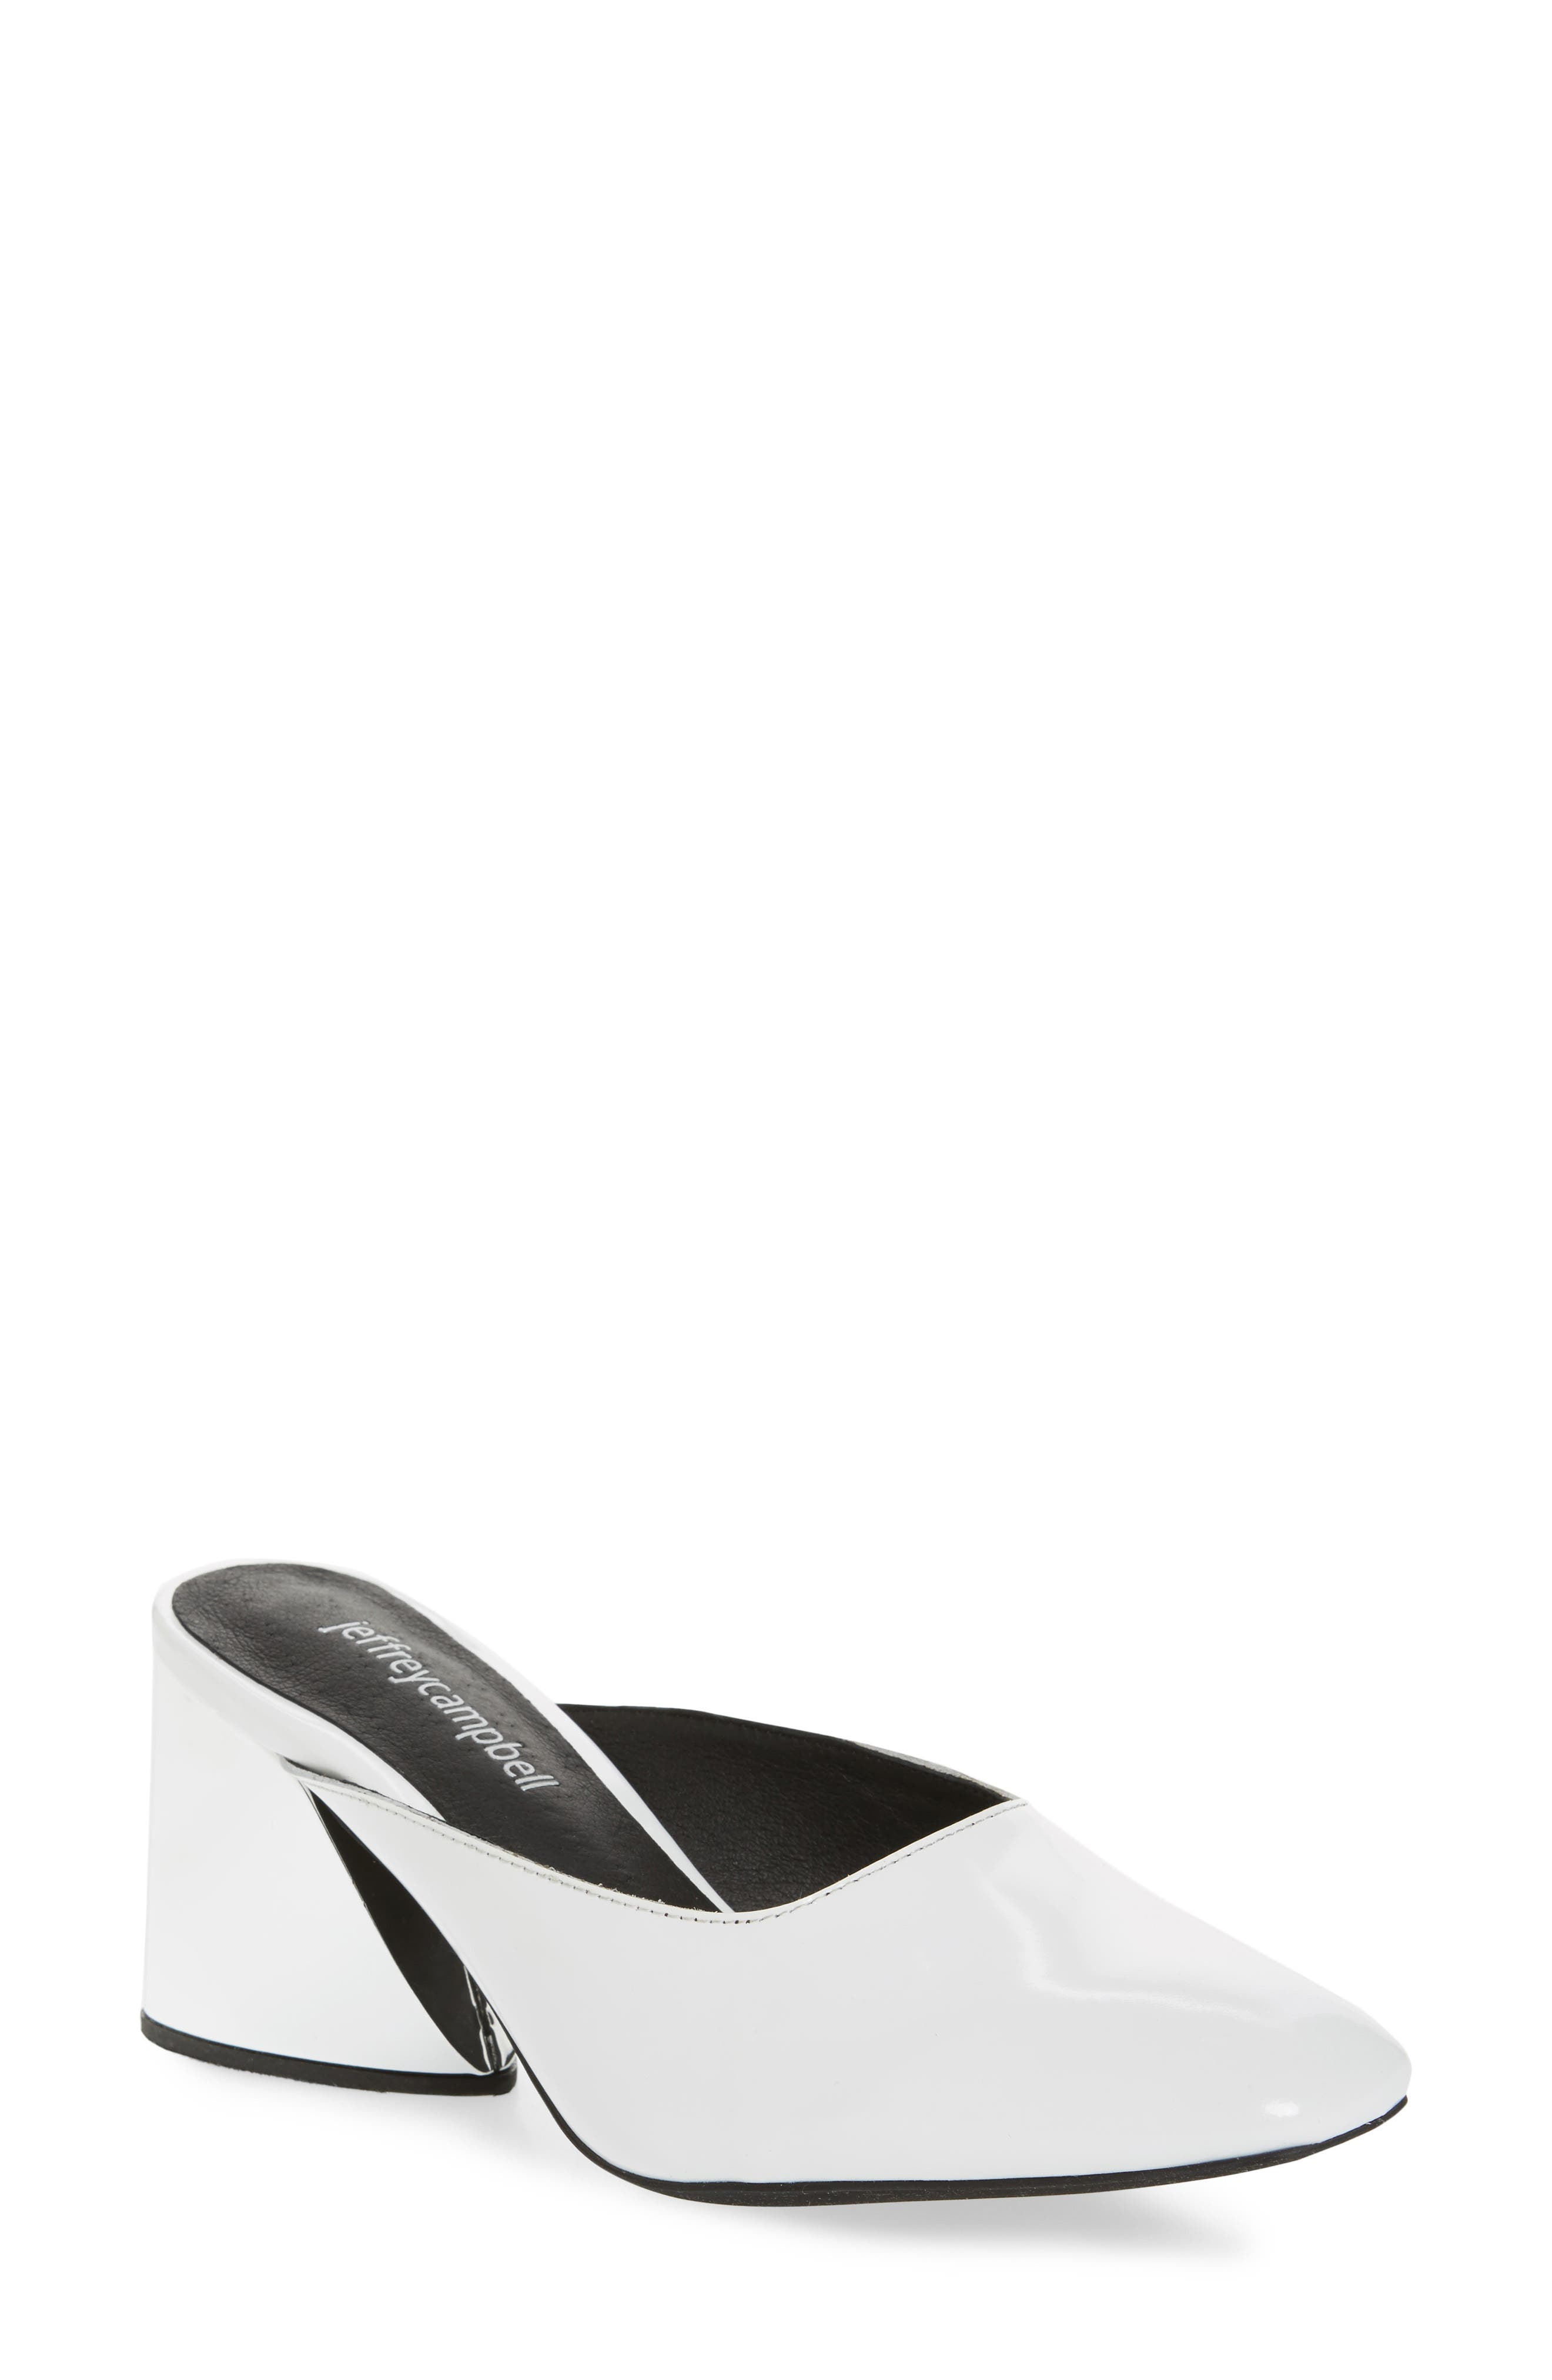 Lamer Flared Heel Mule,                         Main,                         color, White/ Silver Leather